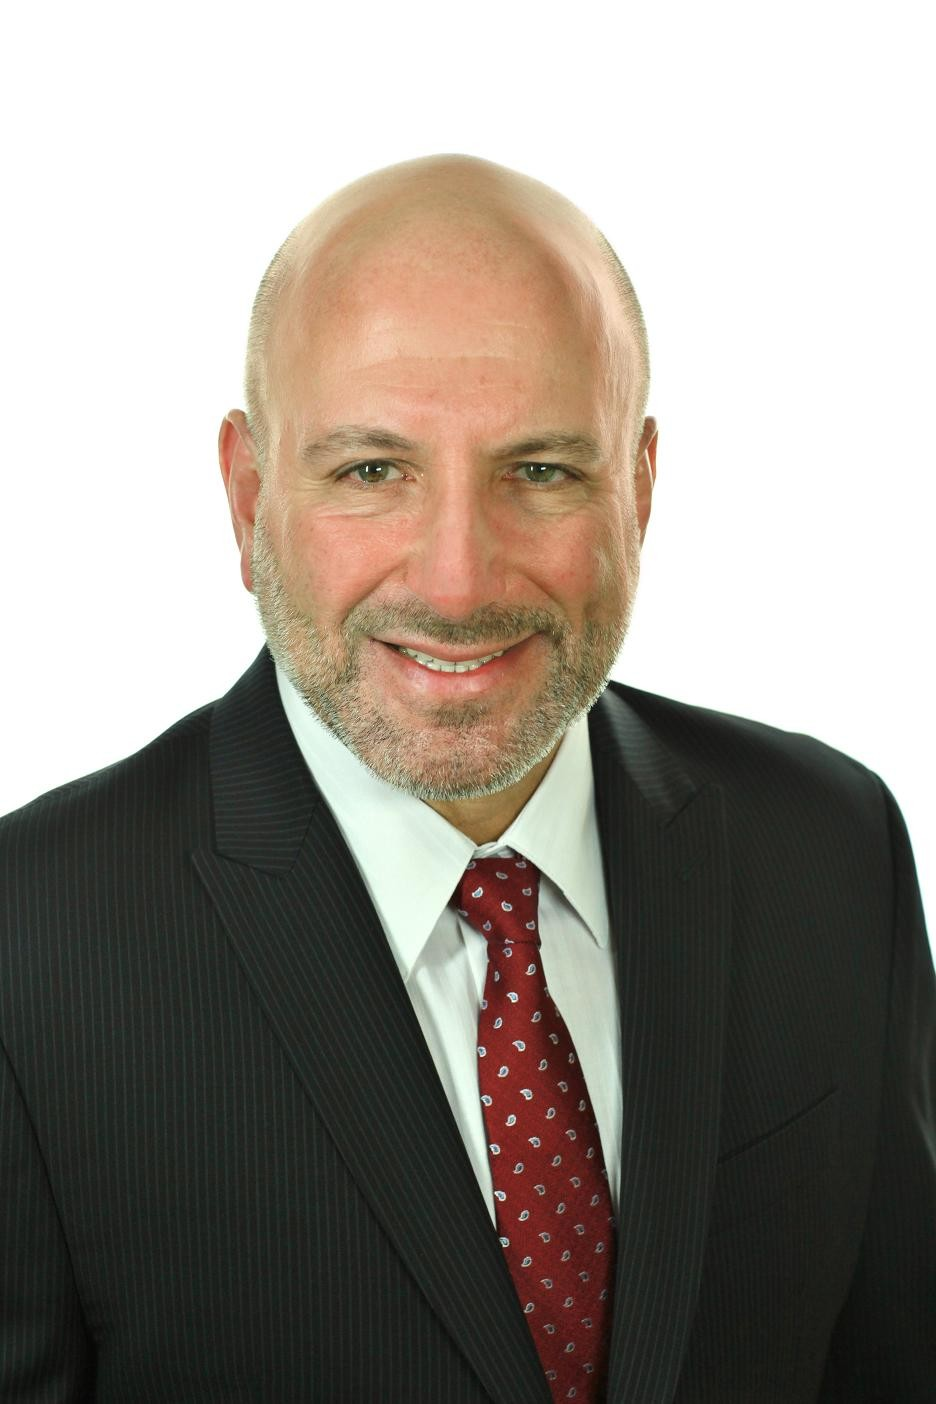 East Meadowite David Goldstein was recently promoted to the partnership at Certilman Balin Adler & Hyman, LLP.